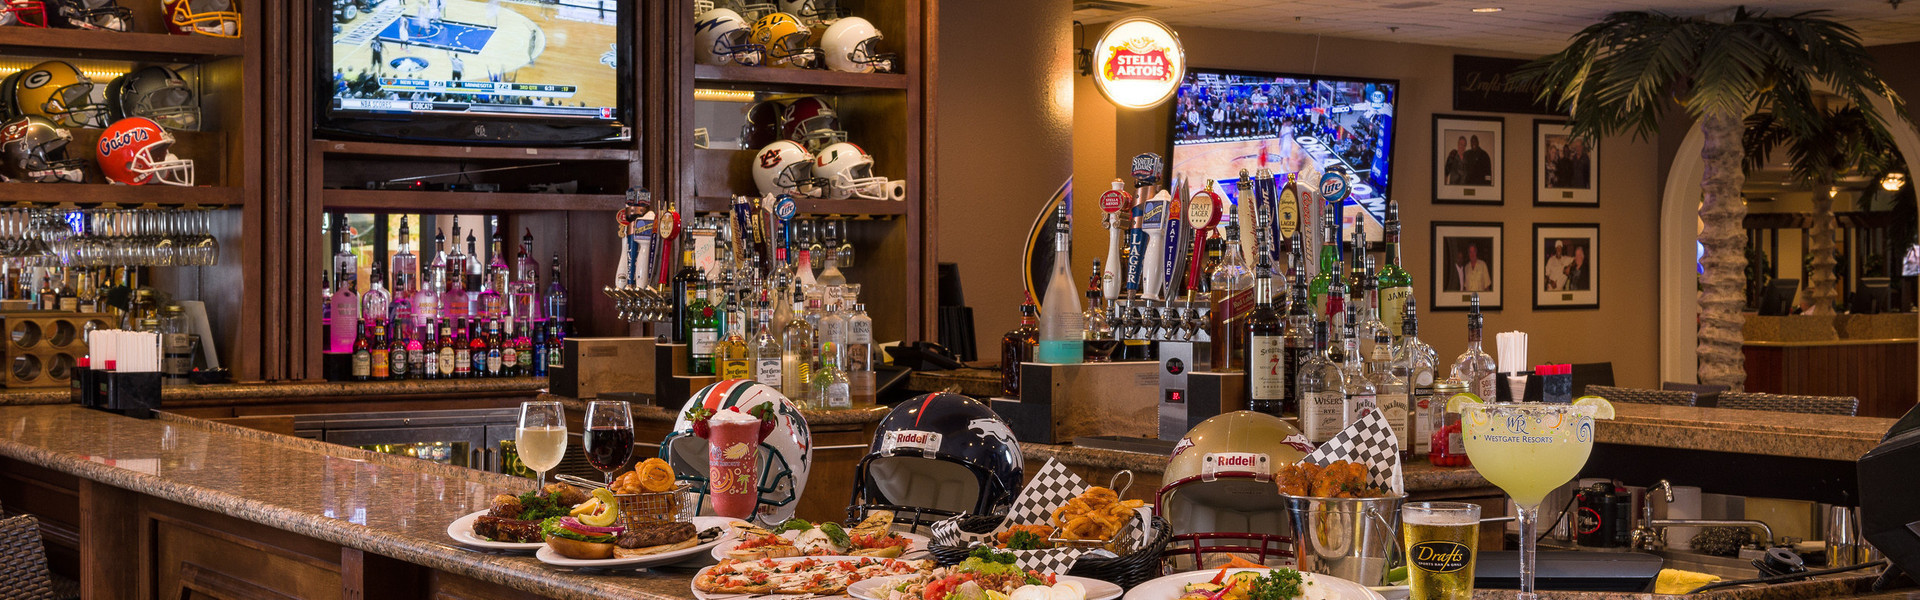 Inside the best best sports bar Kissimmee, FL! Explore the menu for Drafts Sports Bar & Grill at Westgate Vacation Villas Resort!